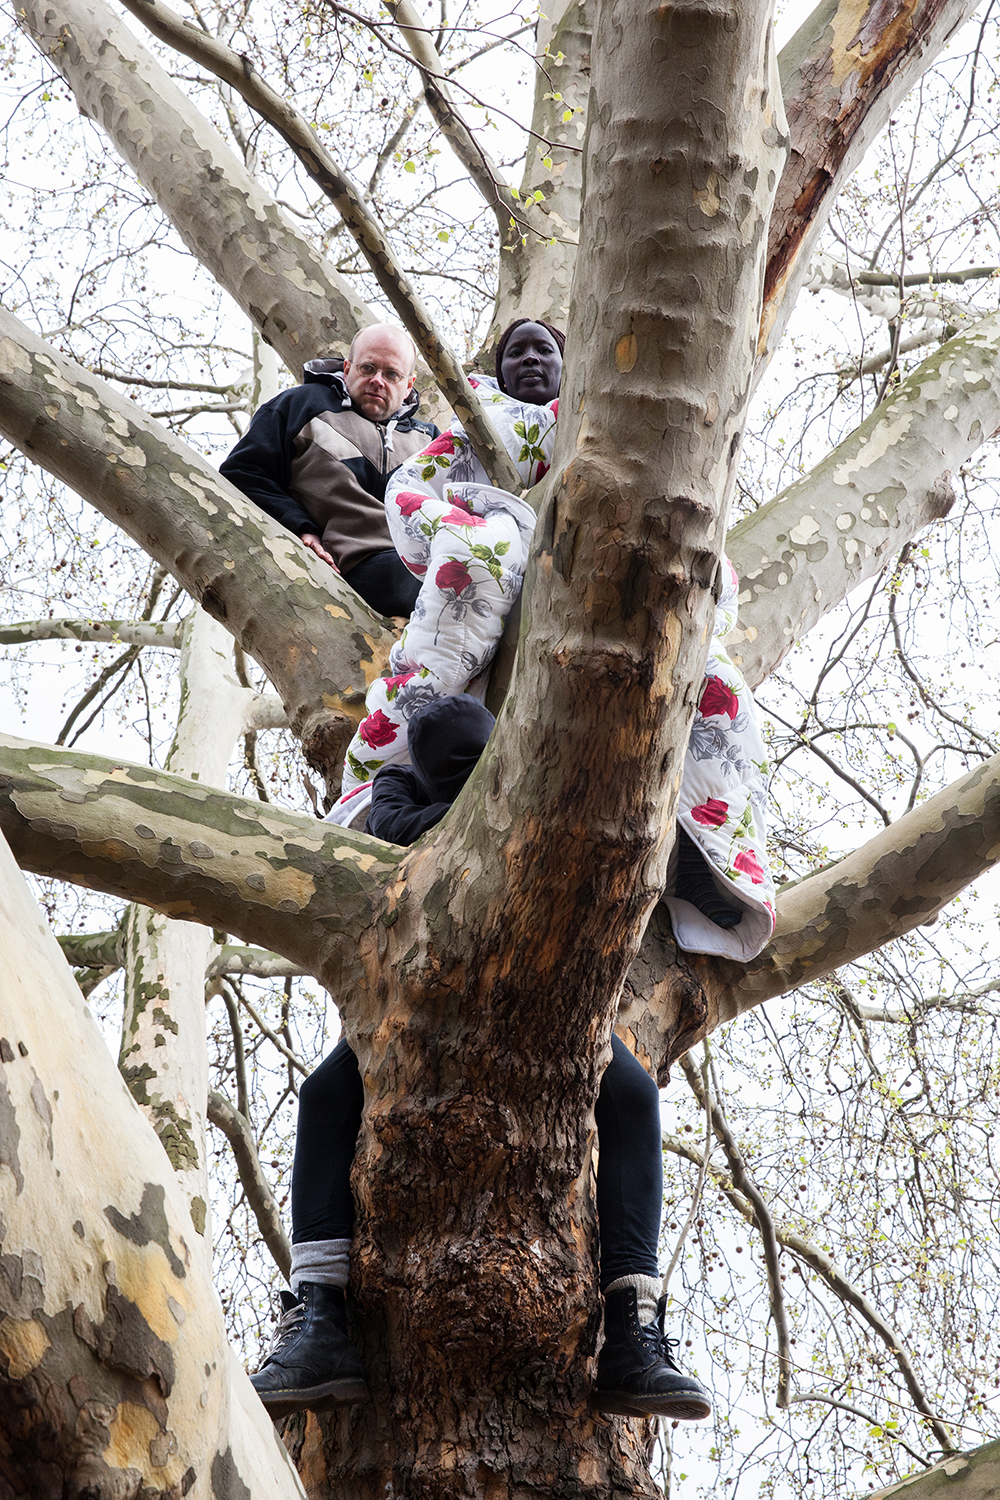 Amir, Ingo and Napuli, an activist and two refugees, climb a tree and start a hunger strike at Oranienplatz. They're protesting the demolition of the camp and the restricted rights of refugees, 2014.